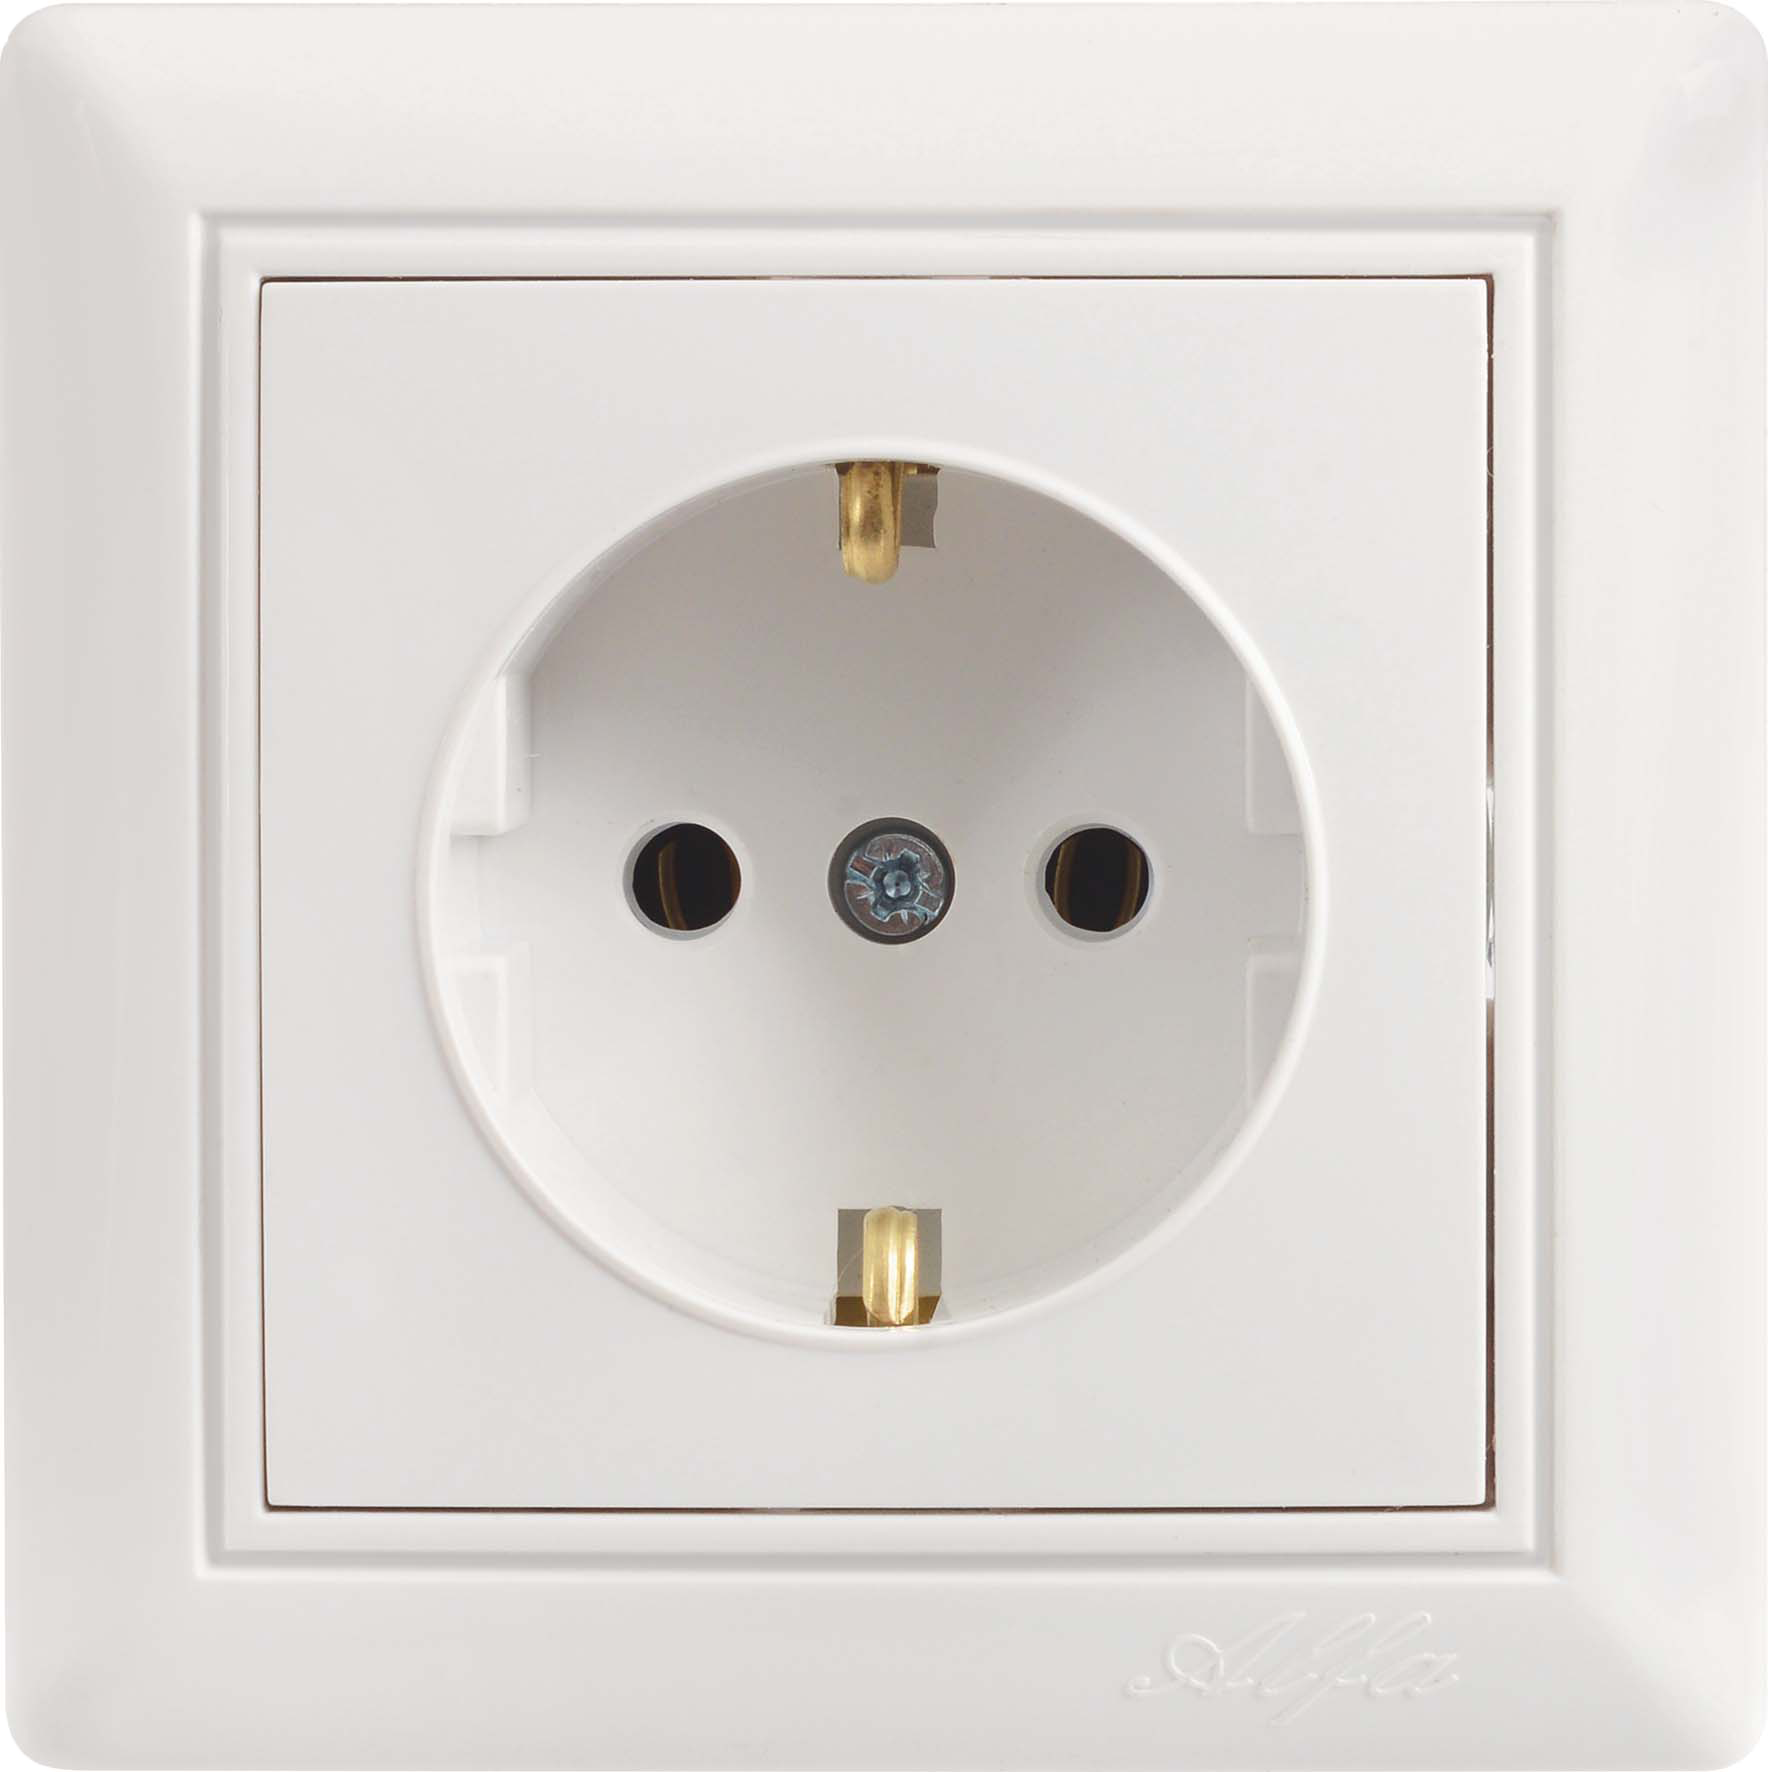 70 400 046	-	Socket Outlet Earthed